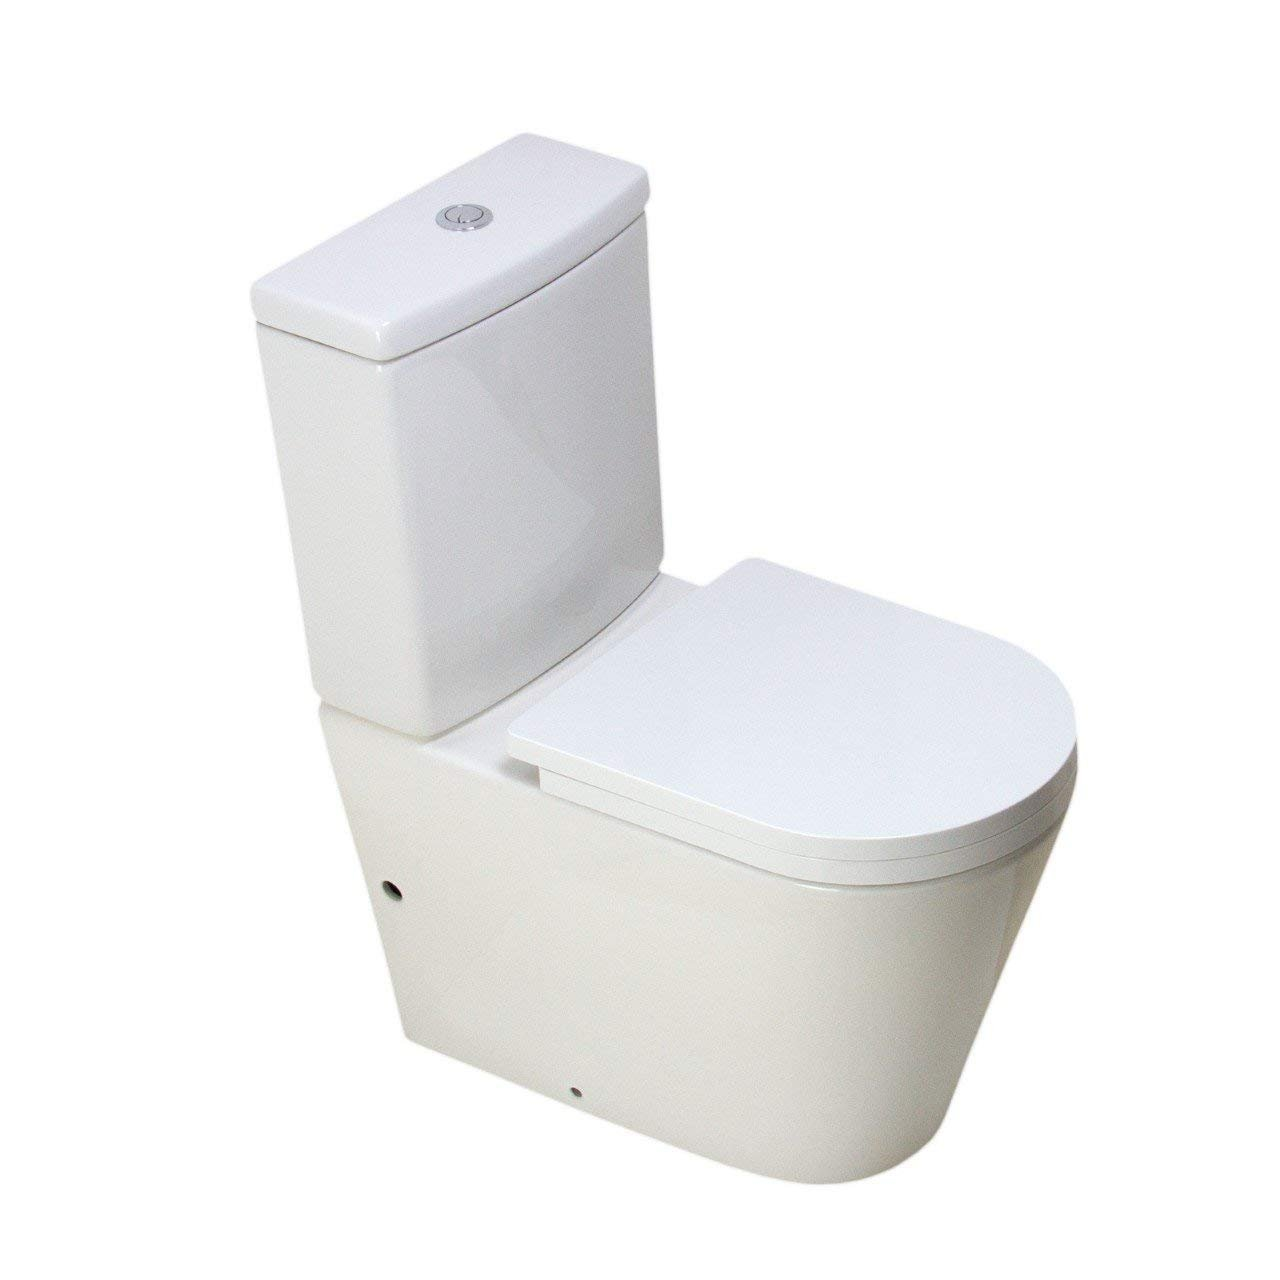 KLARA Toilet WC Close Coupled Bathroom Cloakroom Extra Height Soft Close Seat